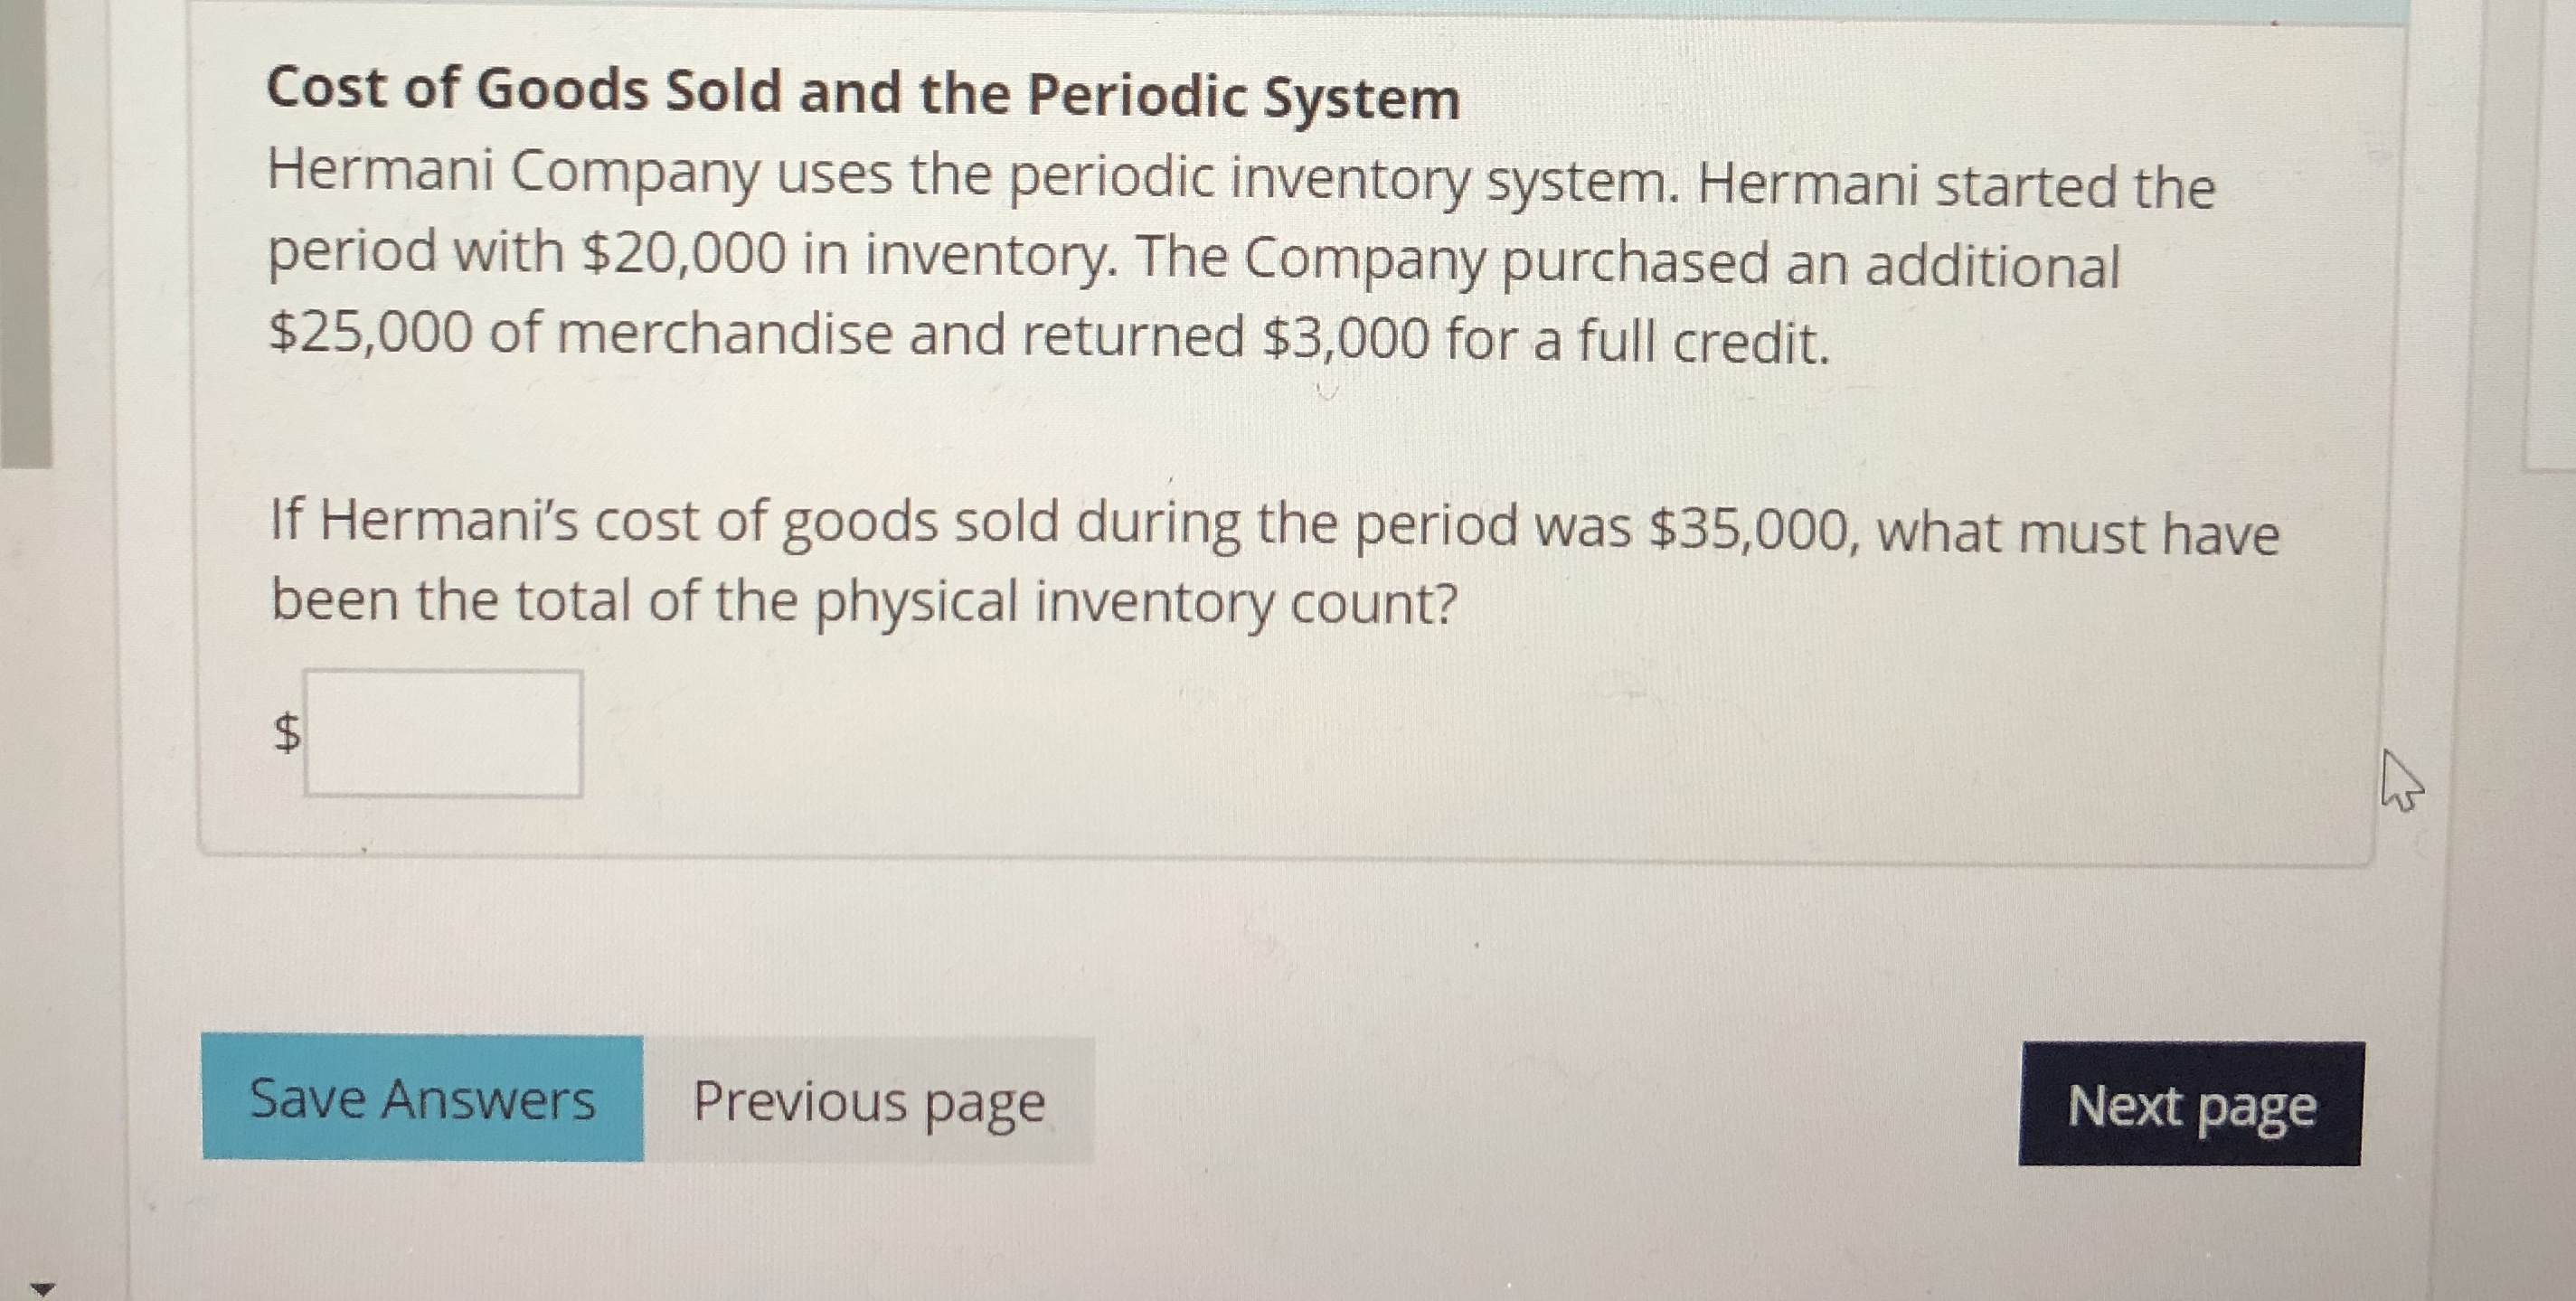 Cost of Goods Sold and the Periodic System Hermani Company uses the periodic inventory system. Hermani started the period with $20,000 in inventory. The Company purchased an additional $25,000 of merchandise and returned $3,000 for a full credit. If Hermani's cost of goods sold during the period was $35,000, what must have been the total of the physical inventory count? $ Next page Previous page Save Answers